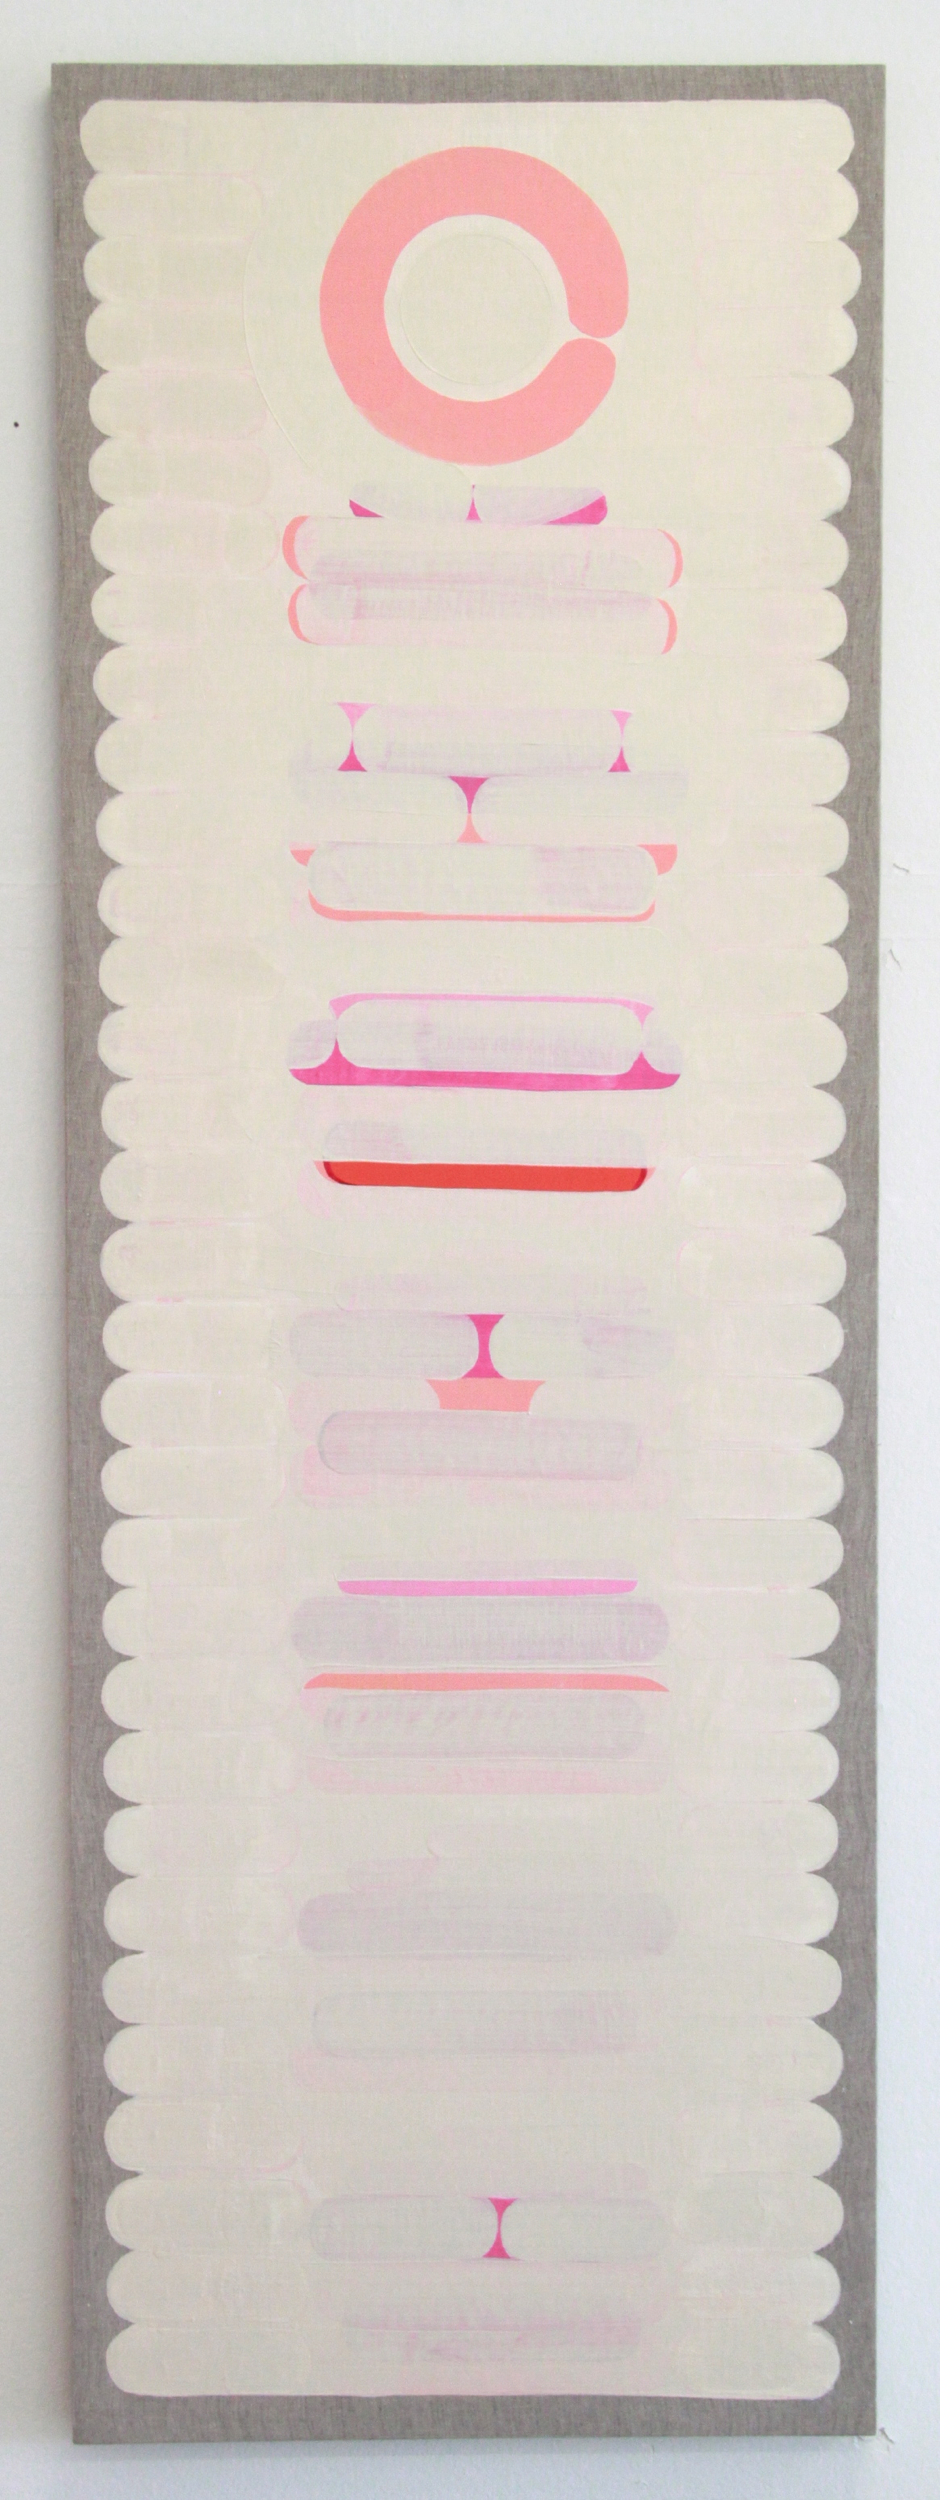 Totem , 2015 oil on handwoven khadi 86 x 32 inches